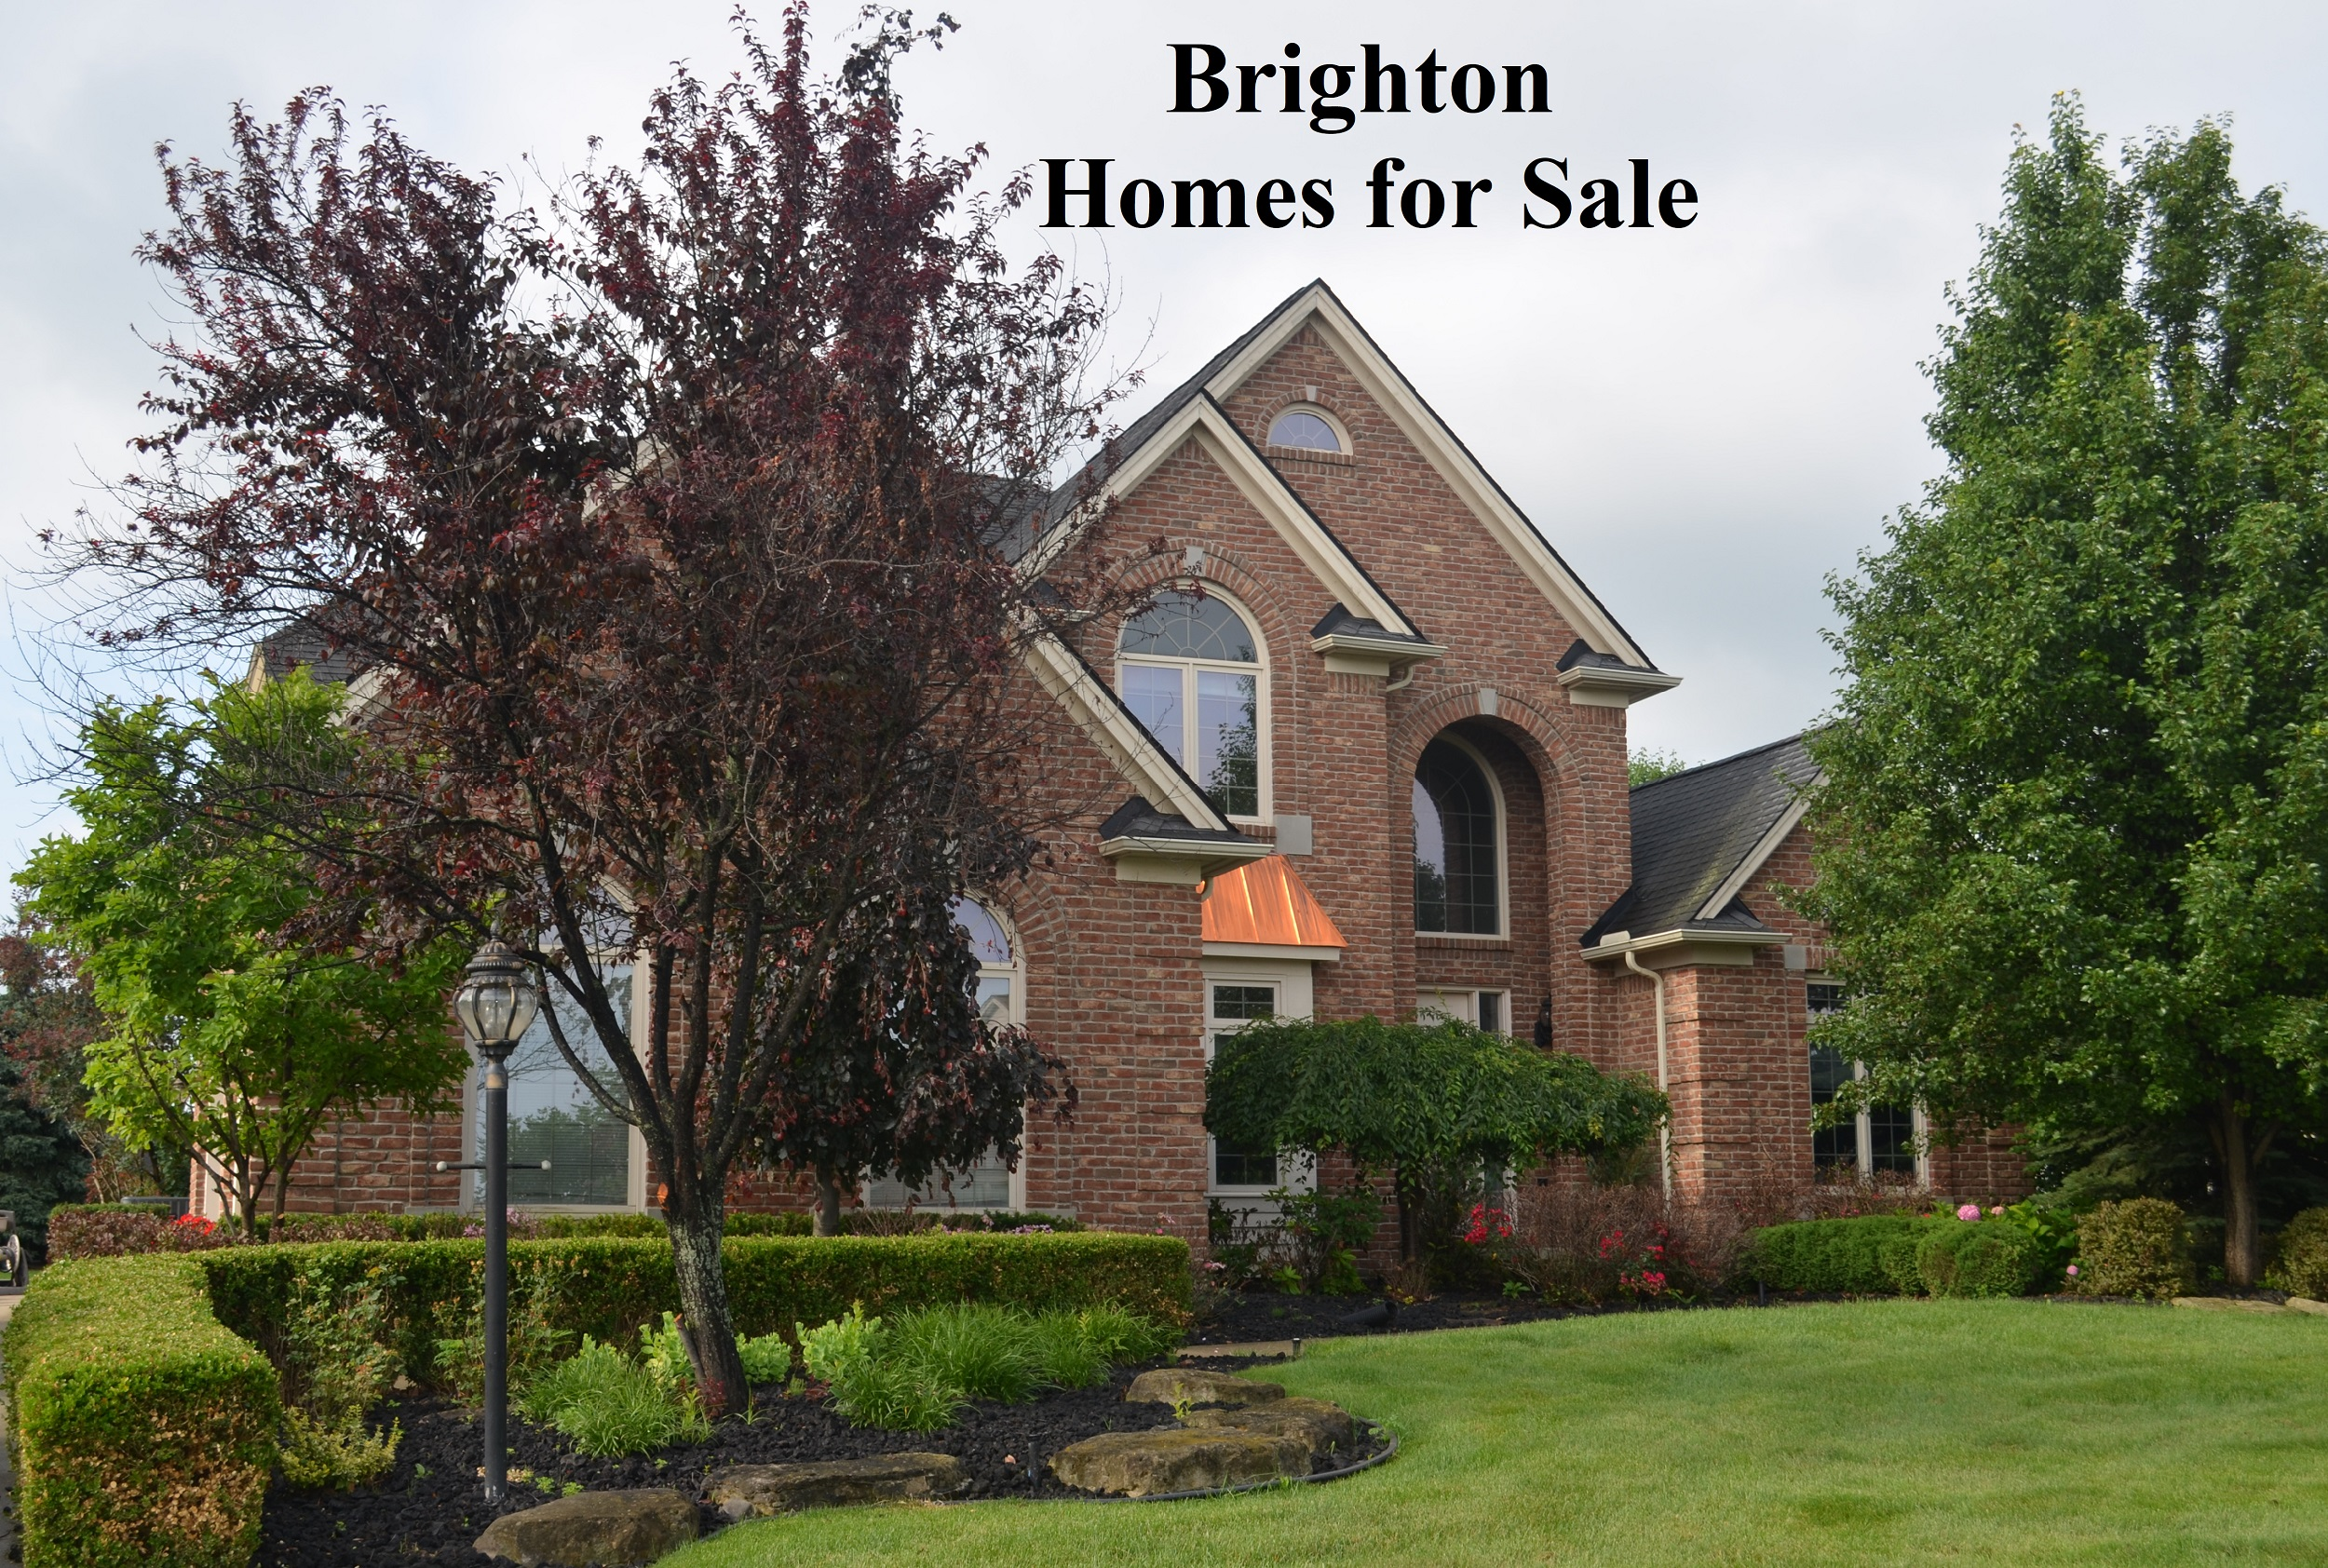 Brighton Homes for Sale